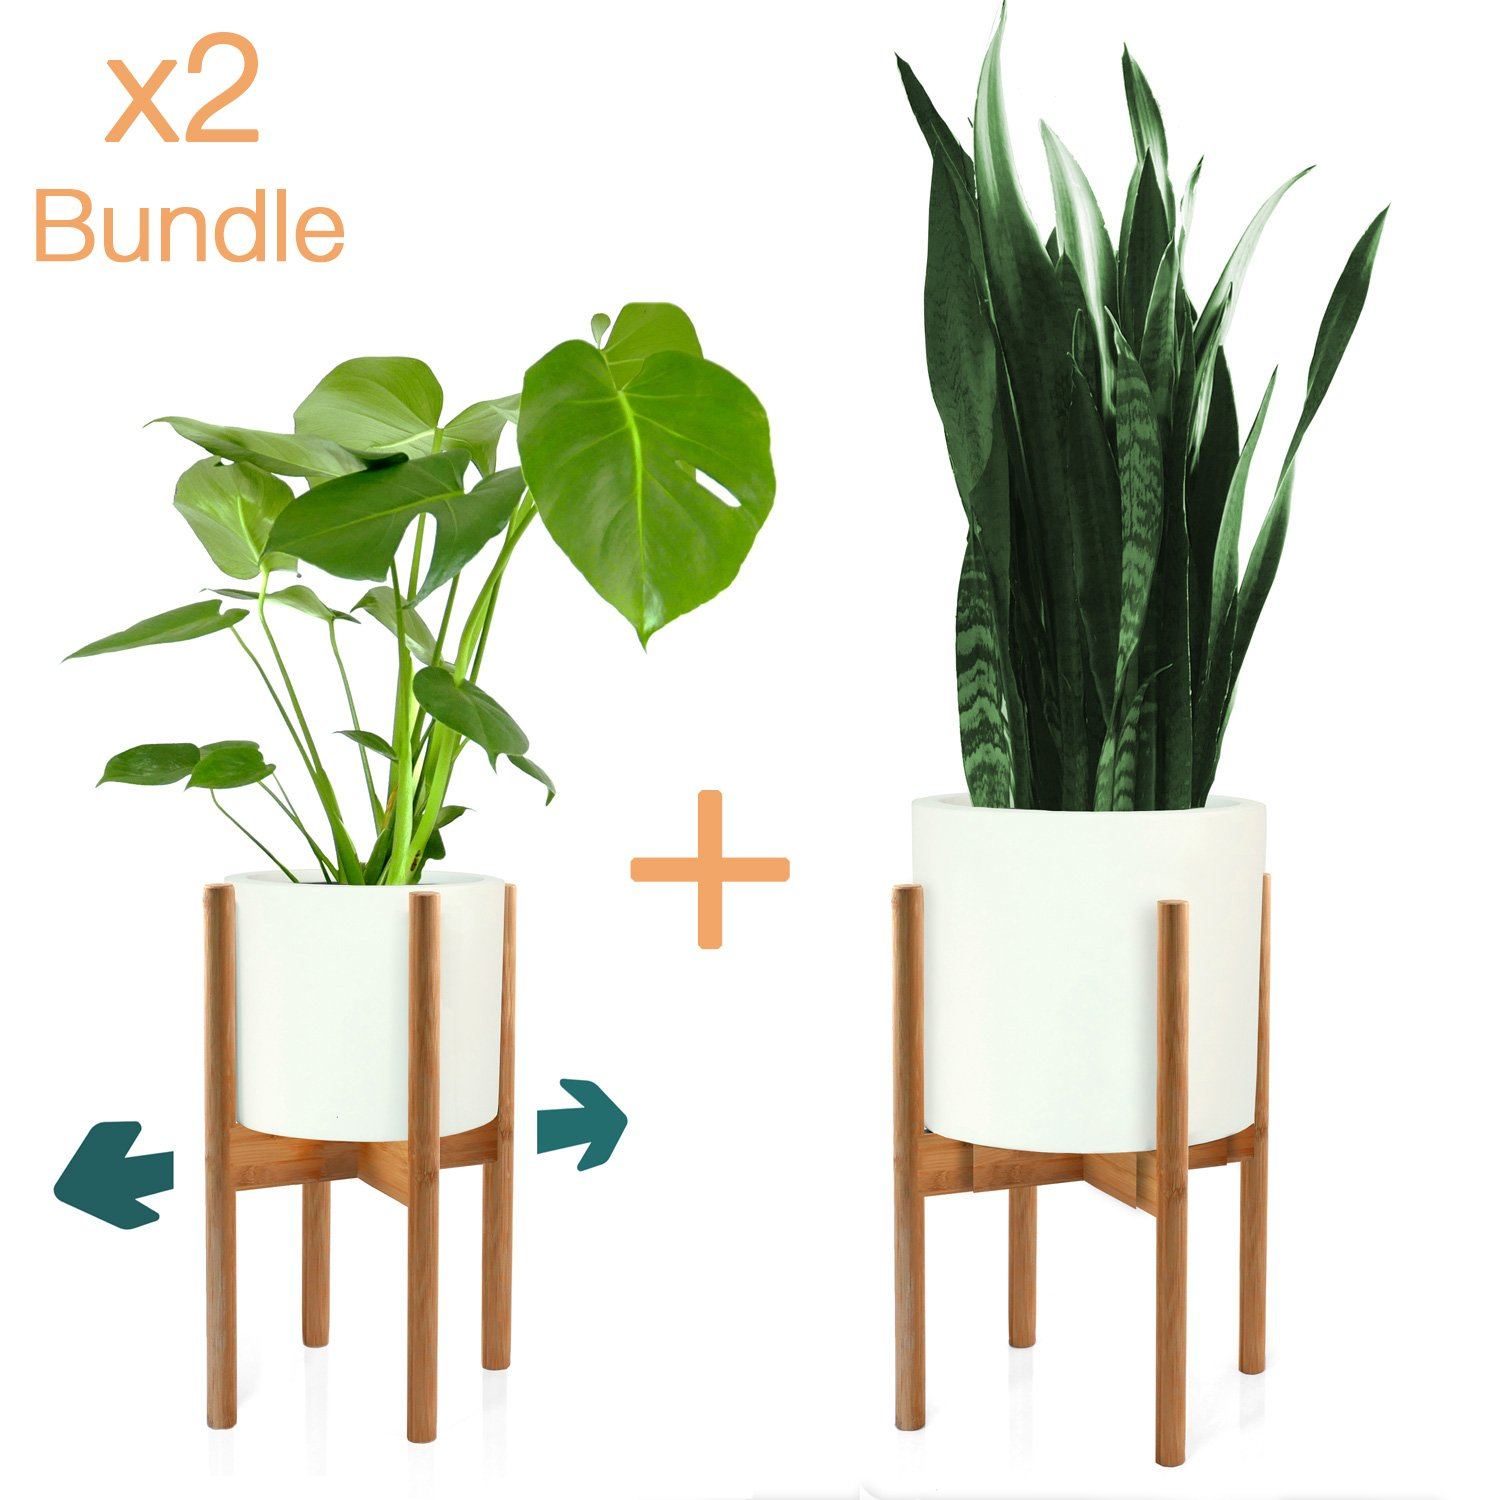 Fox & Fern Mid-Century Modern Plant Stand - Adjustable Width 8'' up to 12'' - Bamboo - Excluding White Ceramic Planter Pot - Set of 2 by Fox & Fern